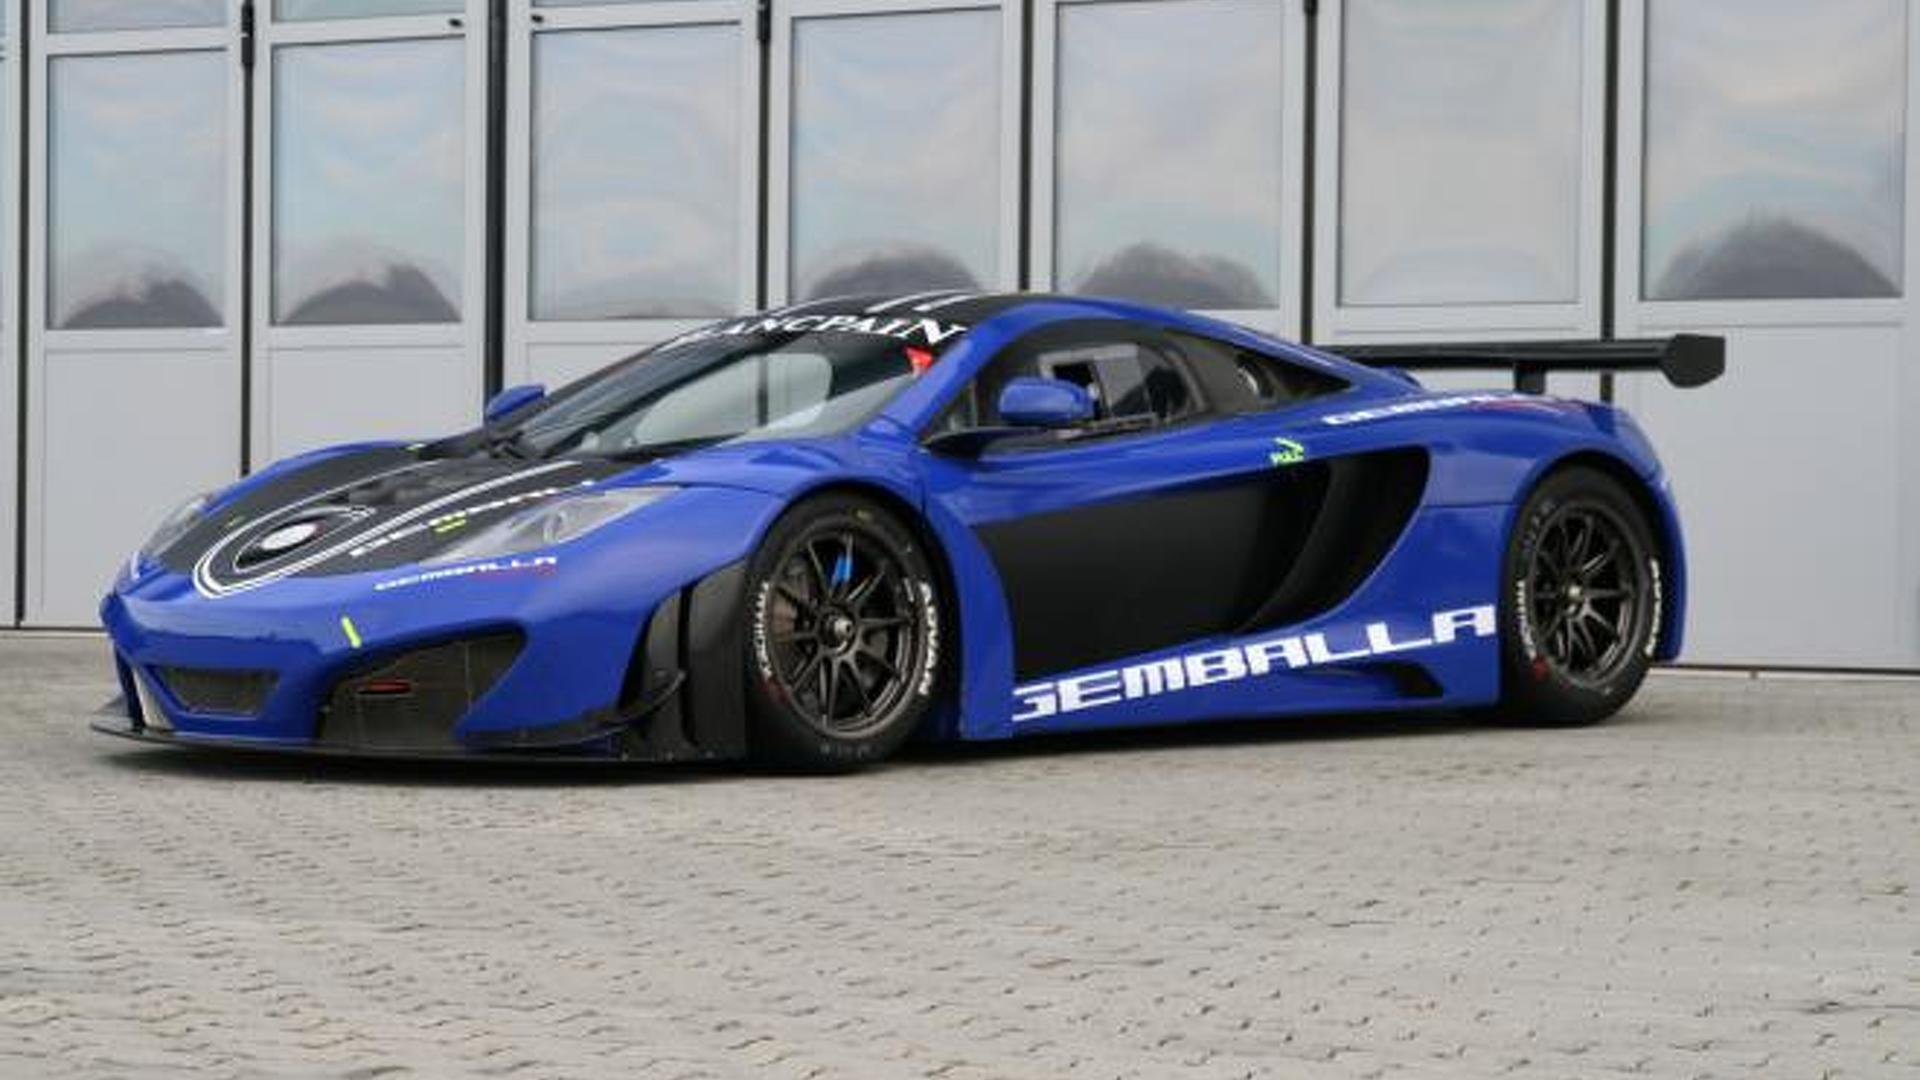 2012 mclaren mp4-12c gt3gemballa racing up for sale